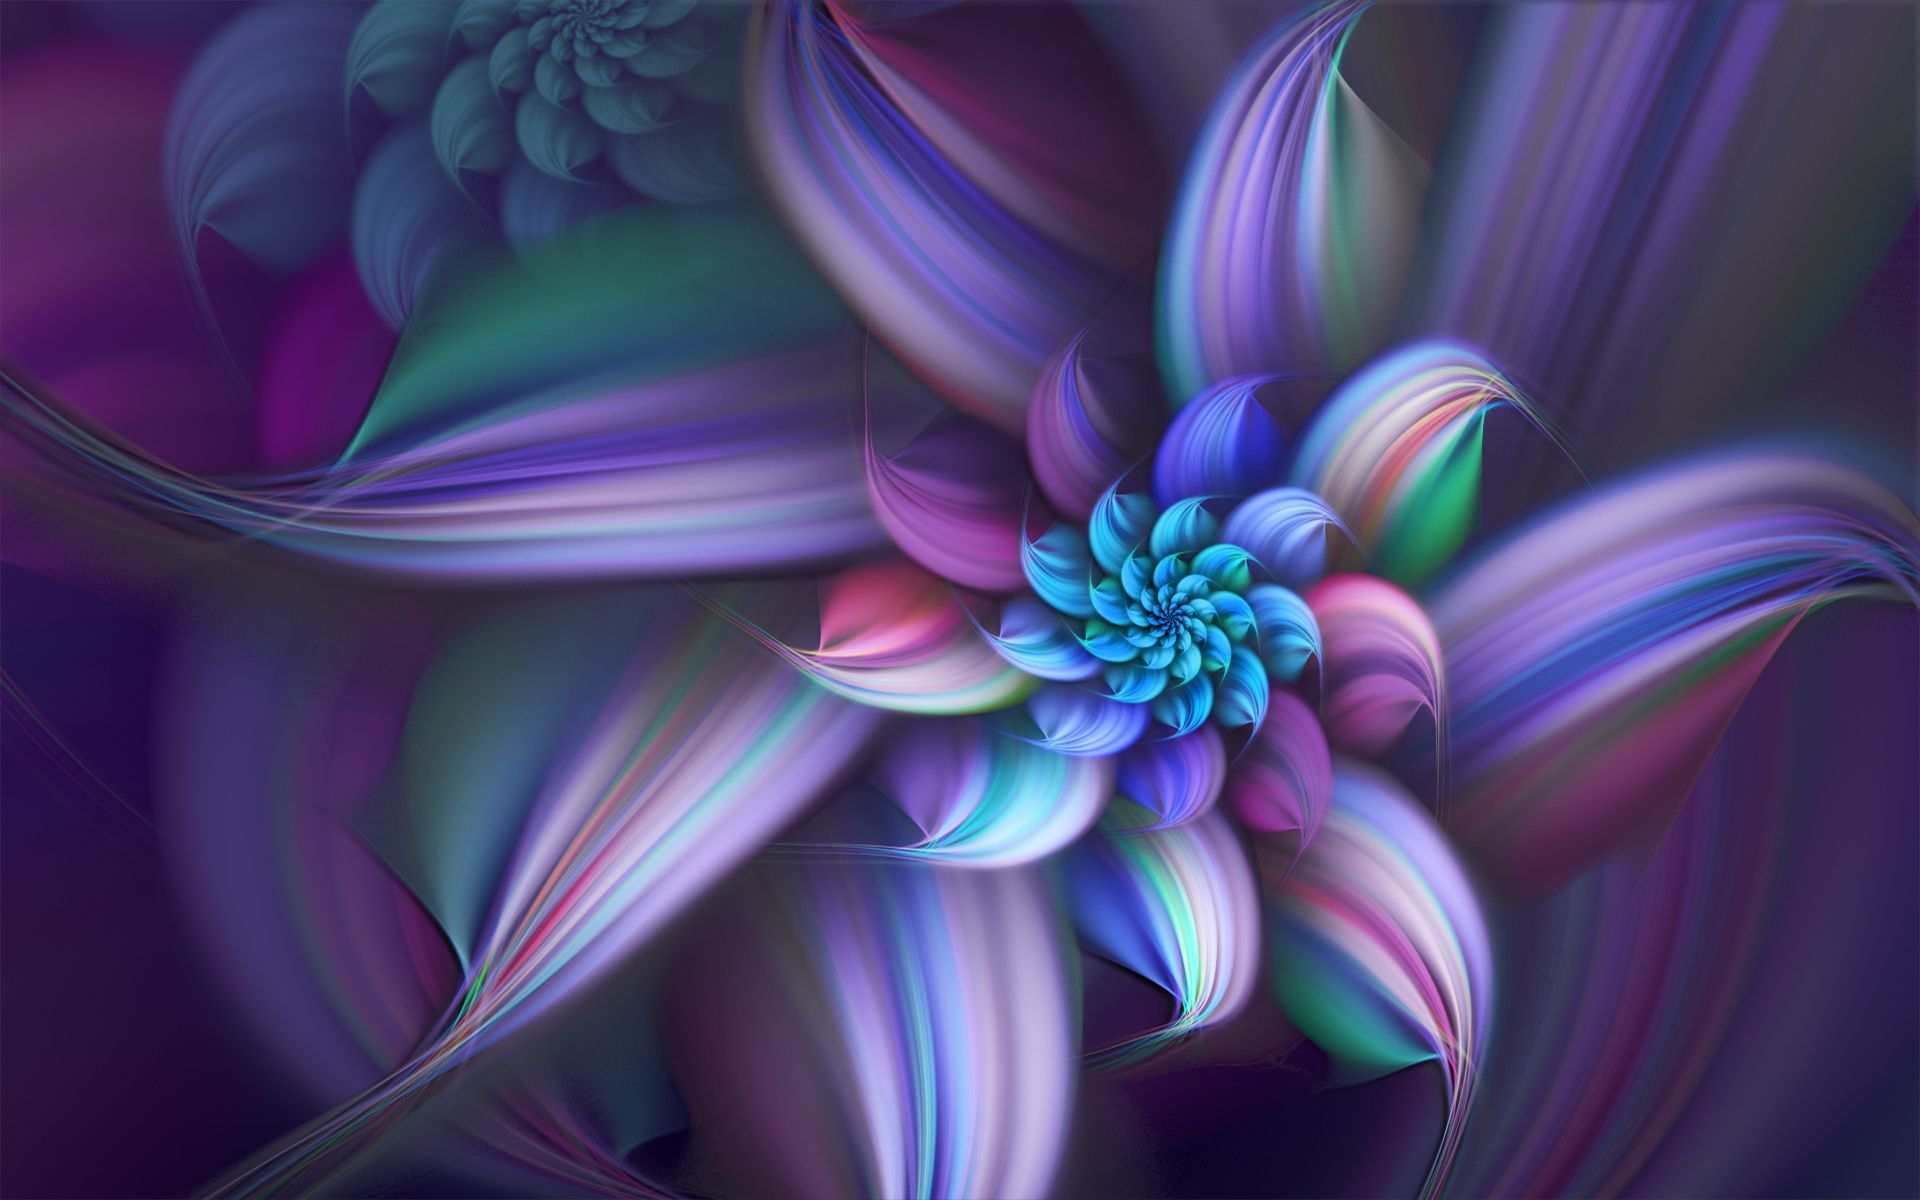 Blue Dahlia By Frankief On Deviantart Flower Art Flower Wallpaper Blue Dahlia